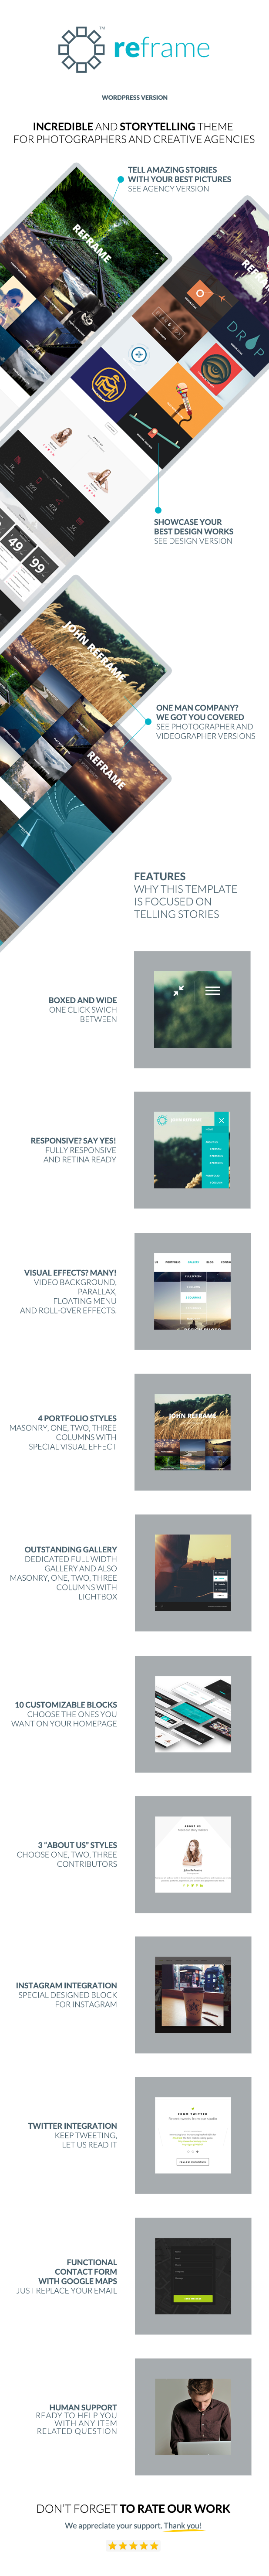 ReFrame - Responsive Photography WordPress Theme